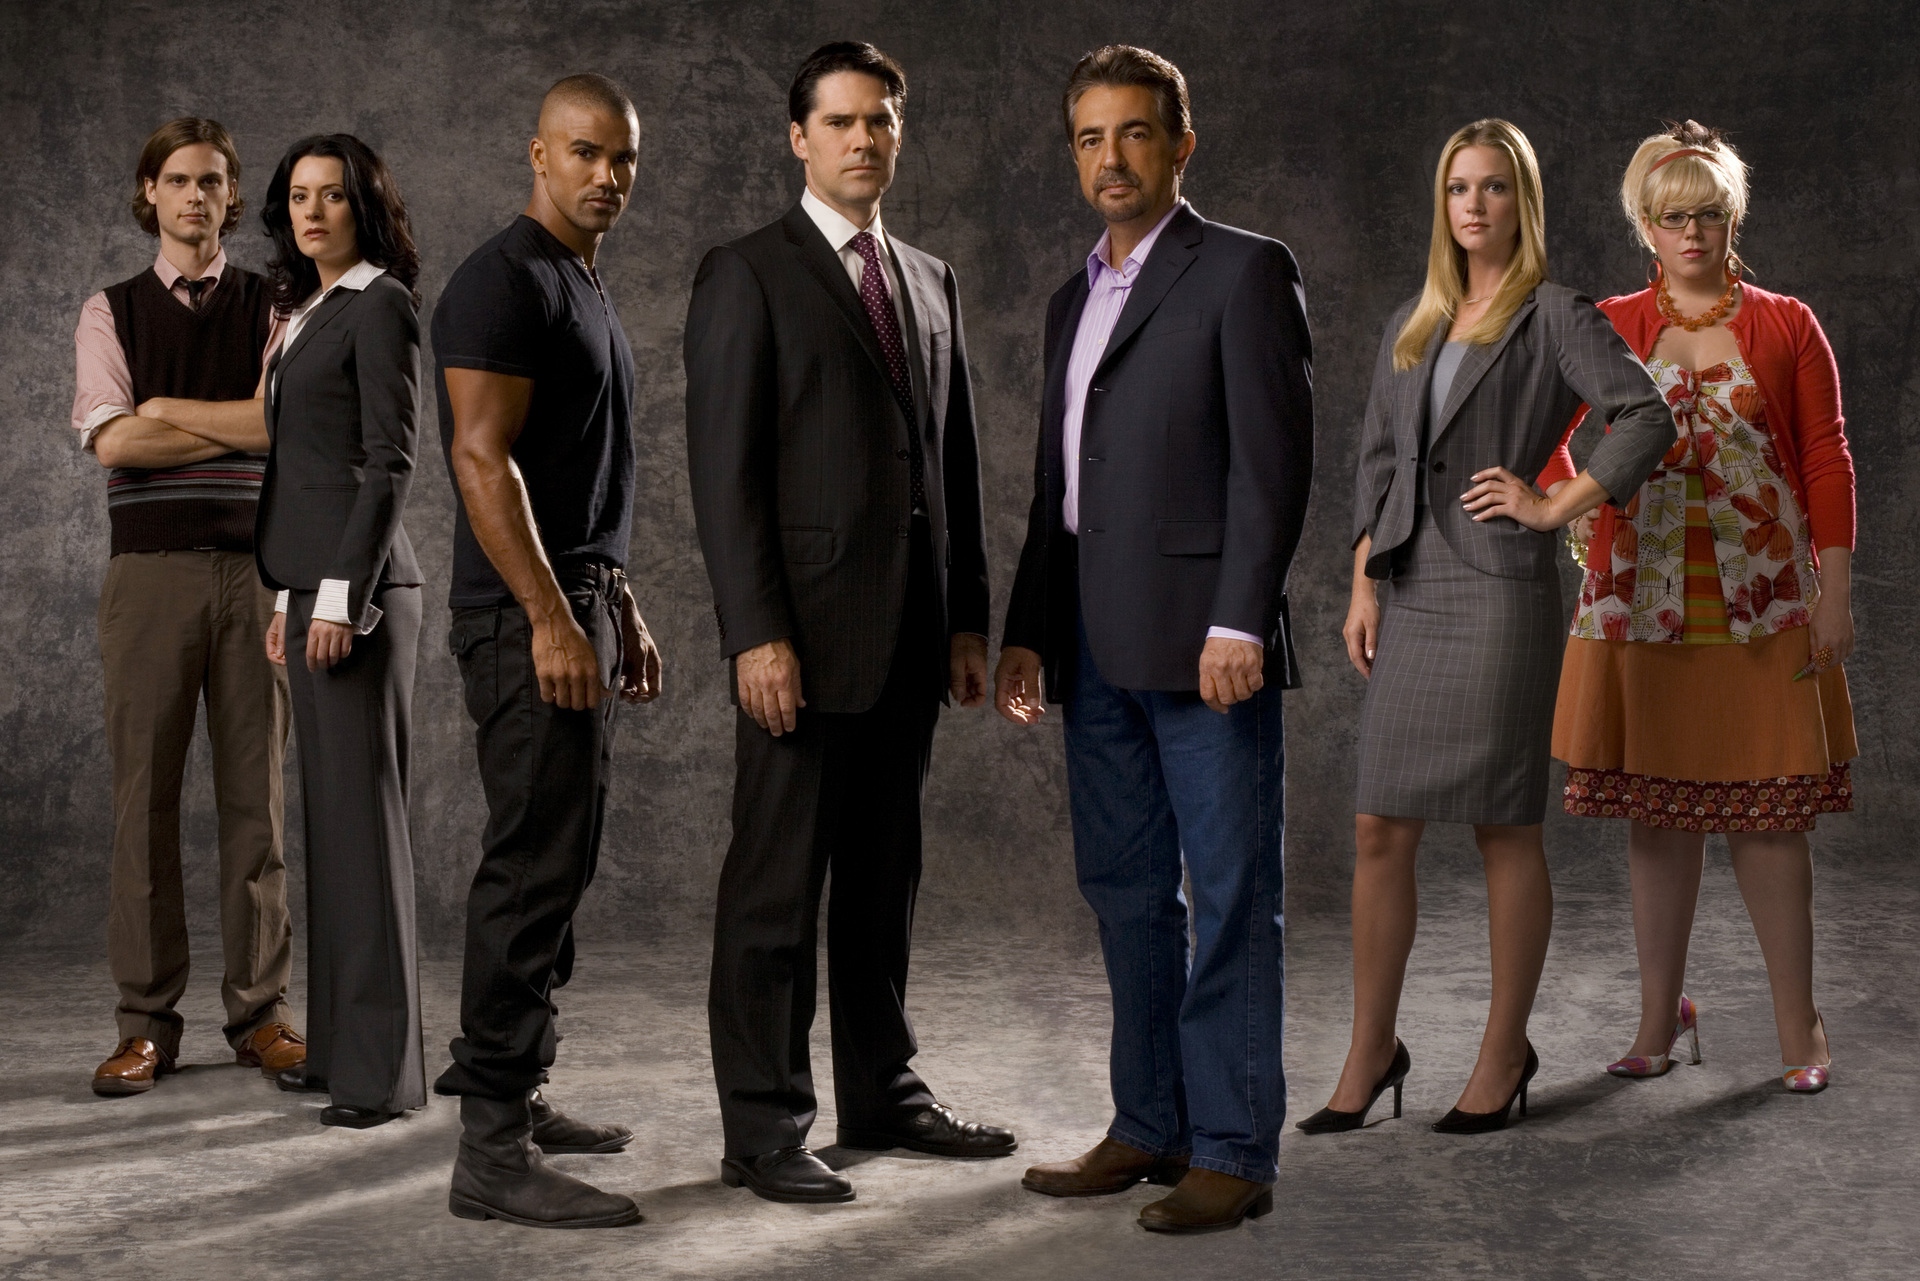 Criminal Minds Cast